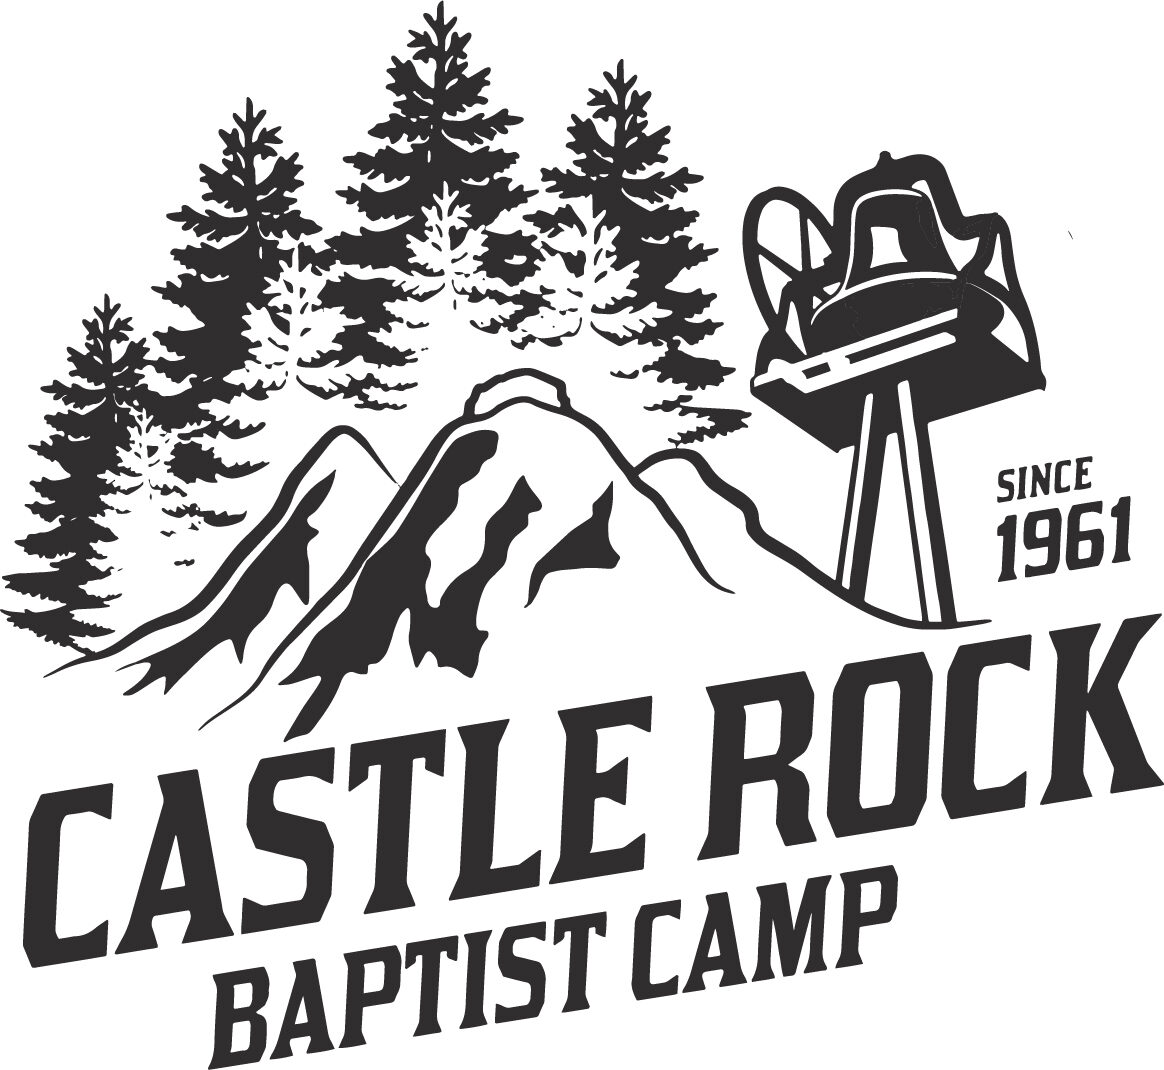 Castle Rock Baptist Camp